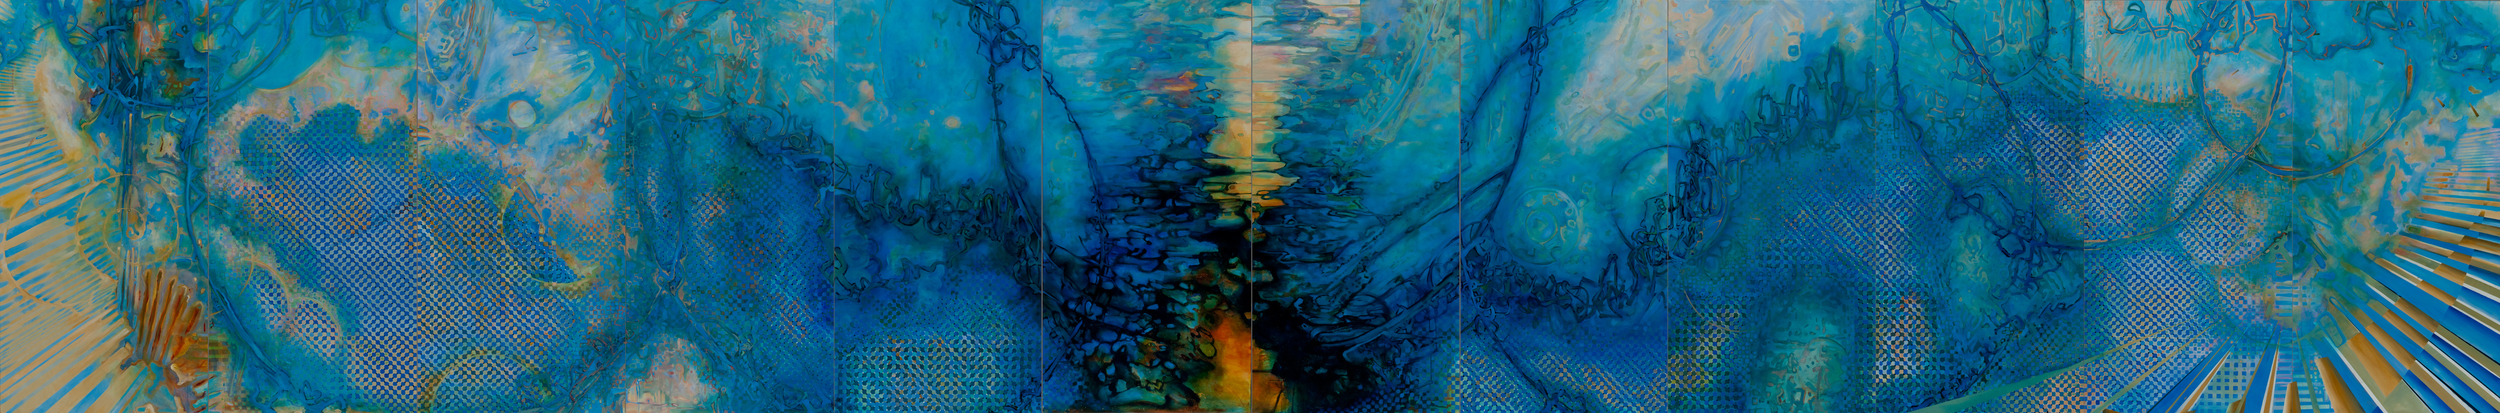 Tropos, Acrylic on Canvas, 8' by 48', 2011